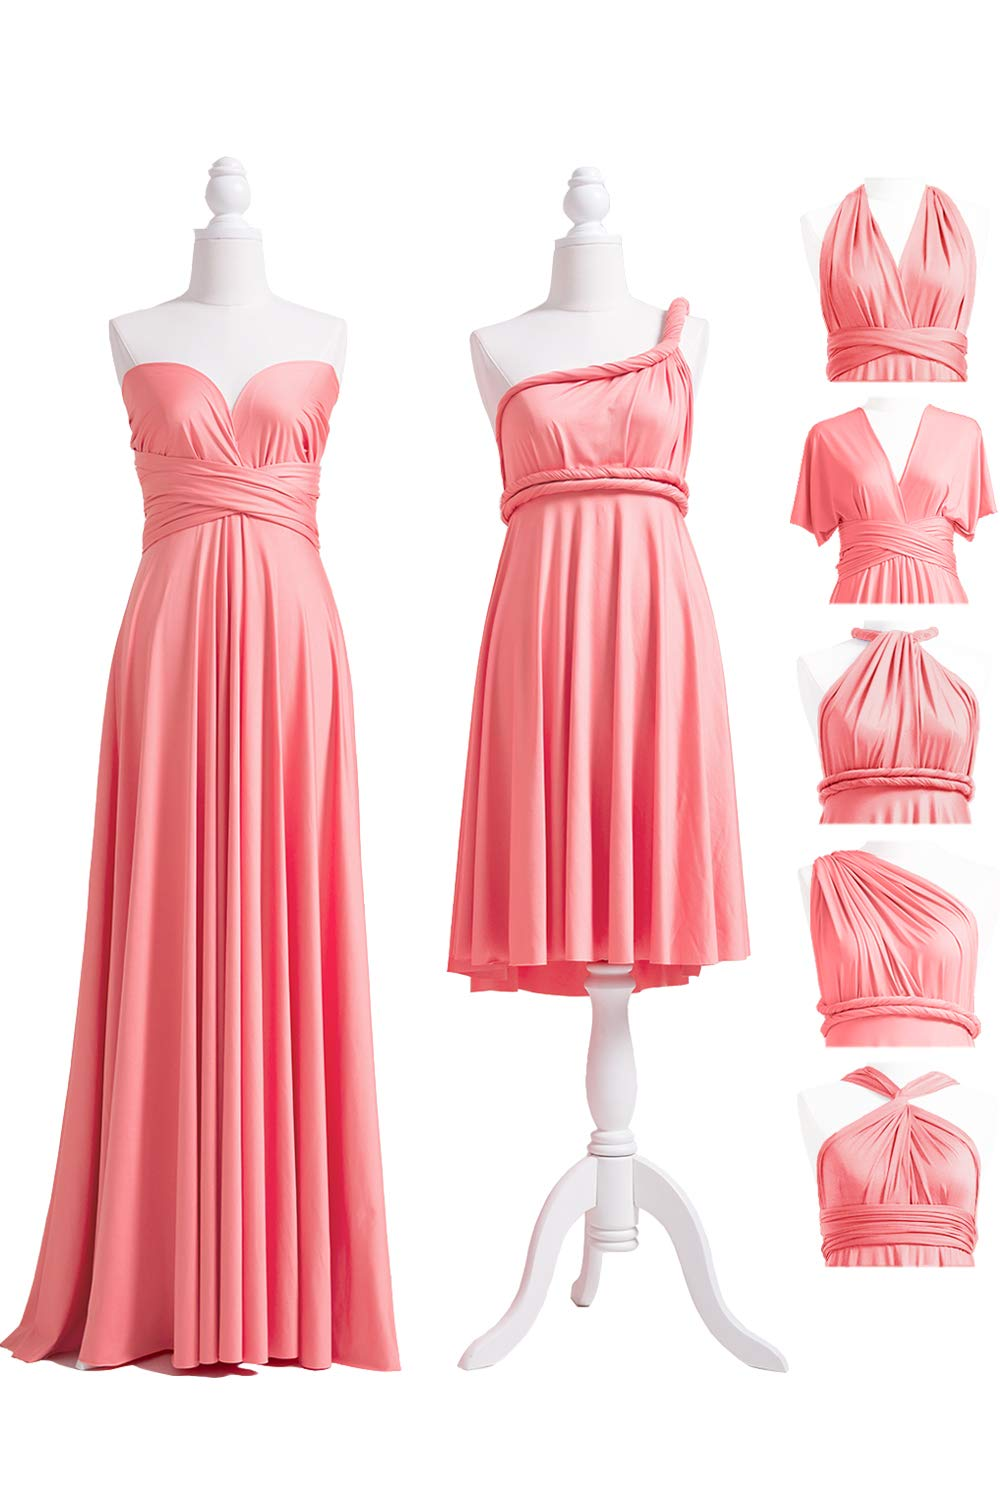 72STYLES Coral Pink Infinity Dress with Bandeau, Convertible Dress,  Bridesmaid Dress, Long,Short, Plus Size, Multi-Way Dress, Twist Wrap Dress